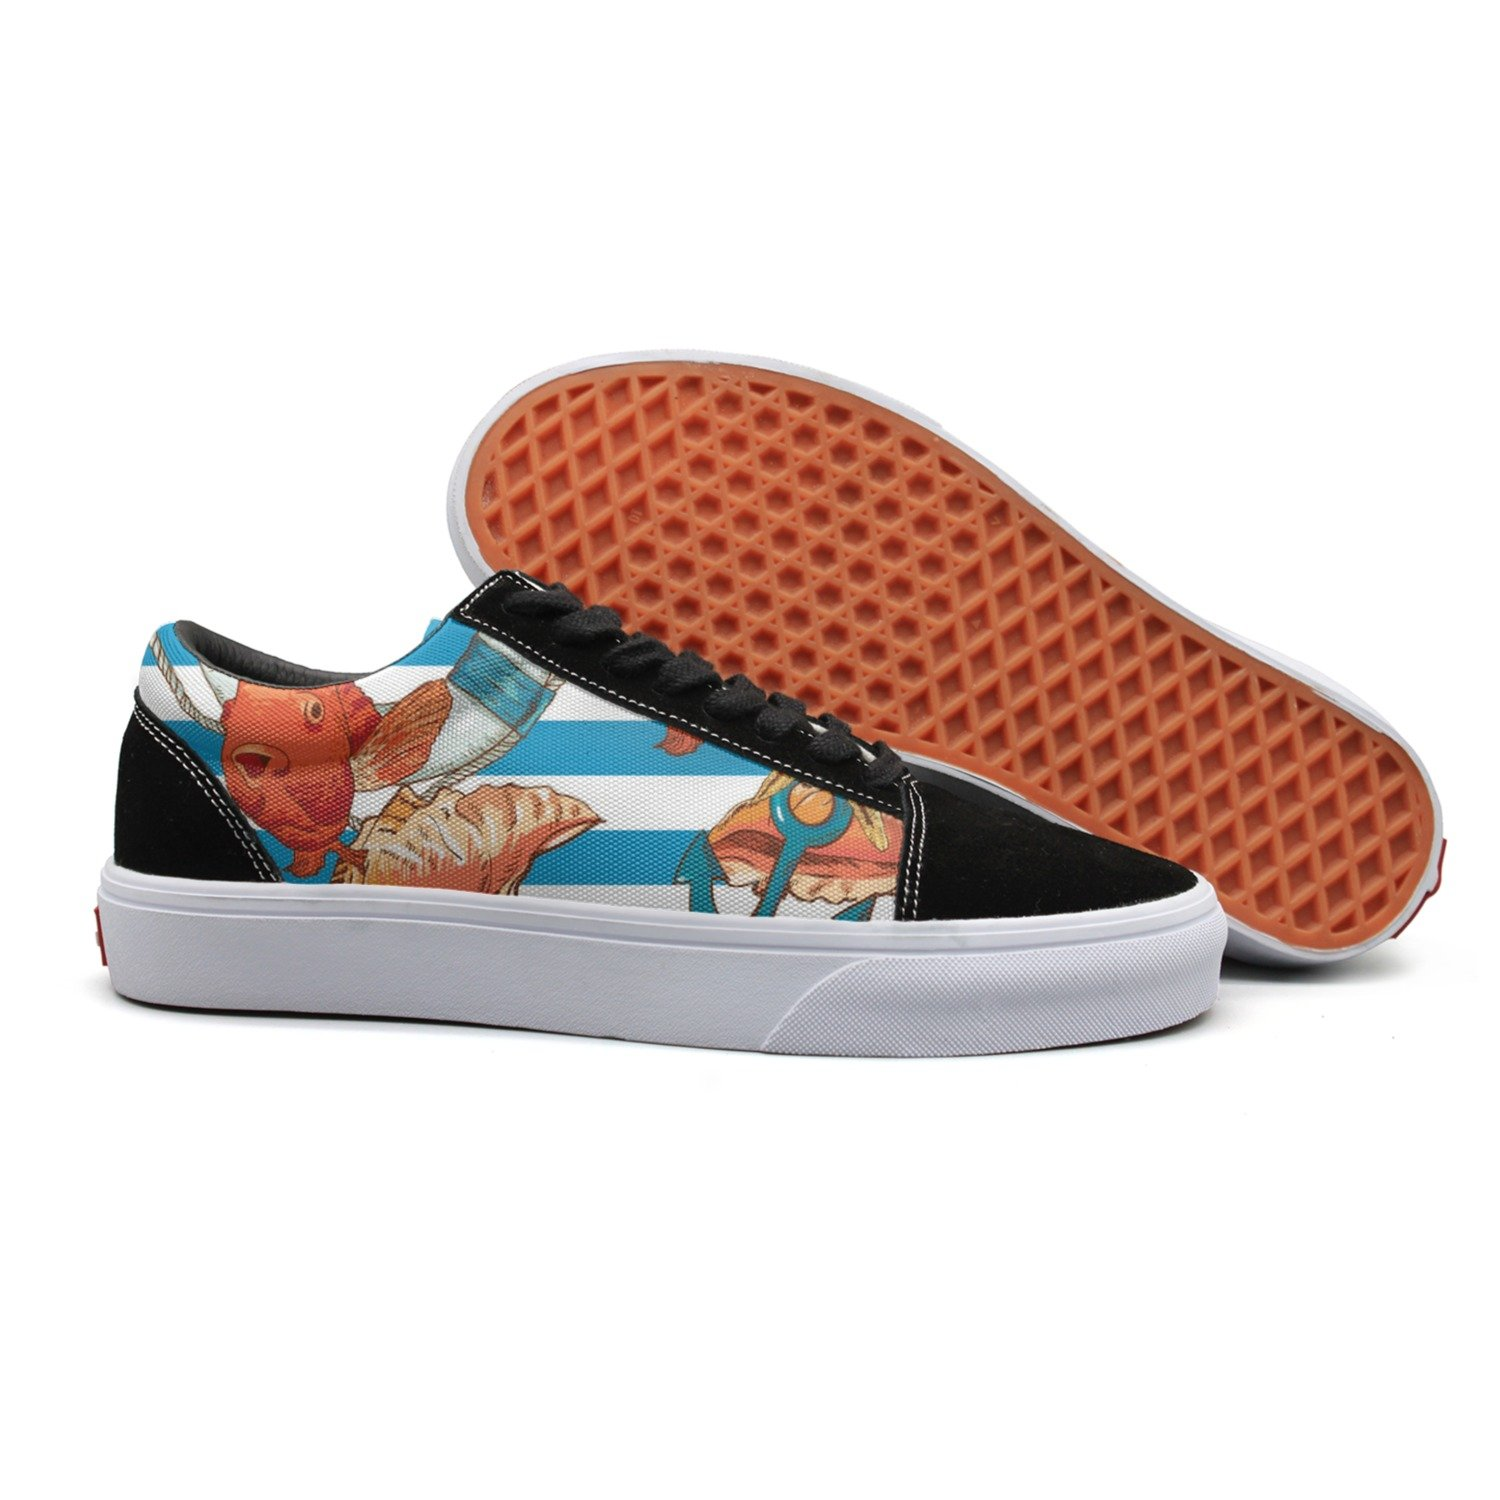 VCERTHDF Print Trendy Sea Shells Anchor Lifeline Fish On Striped Low Top Canvas Sneakers